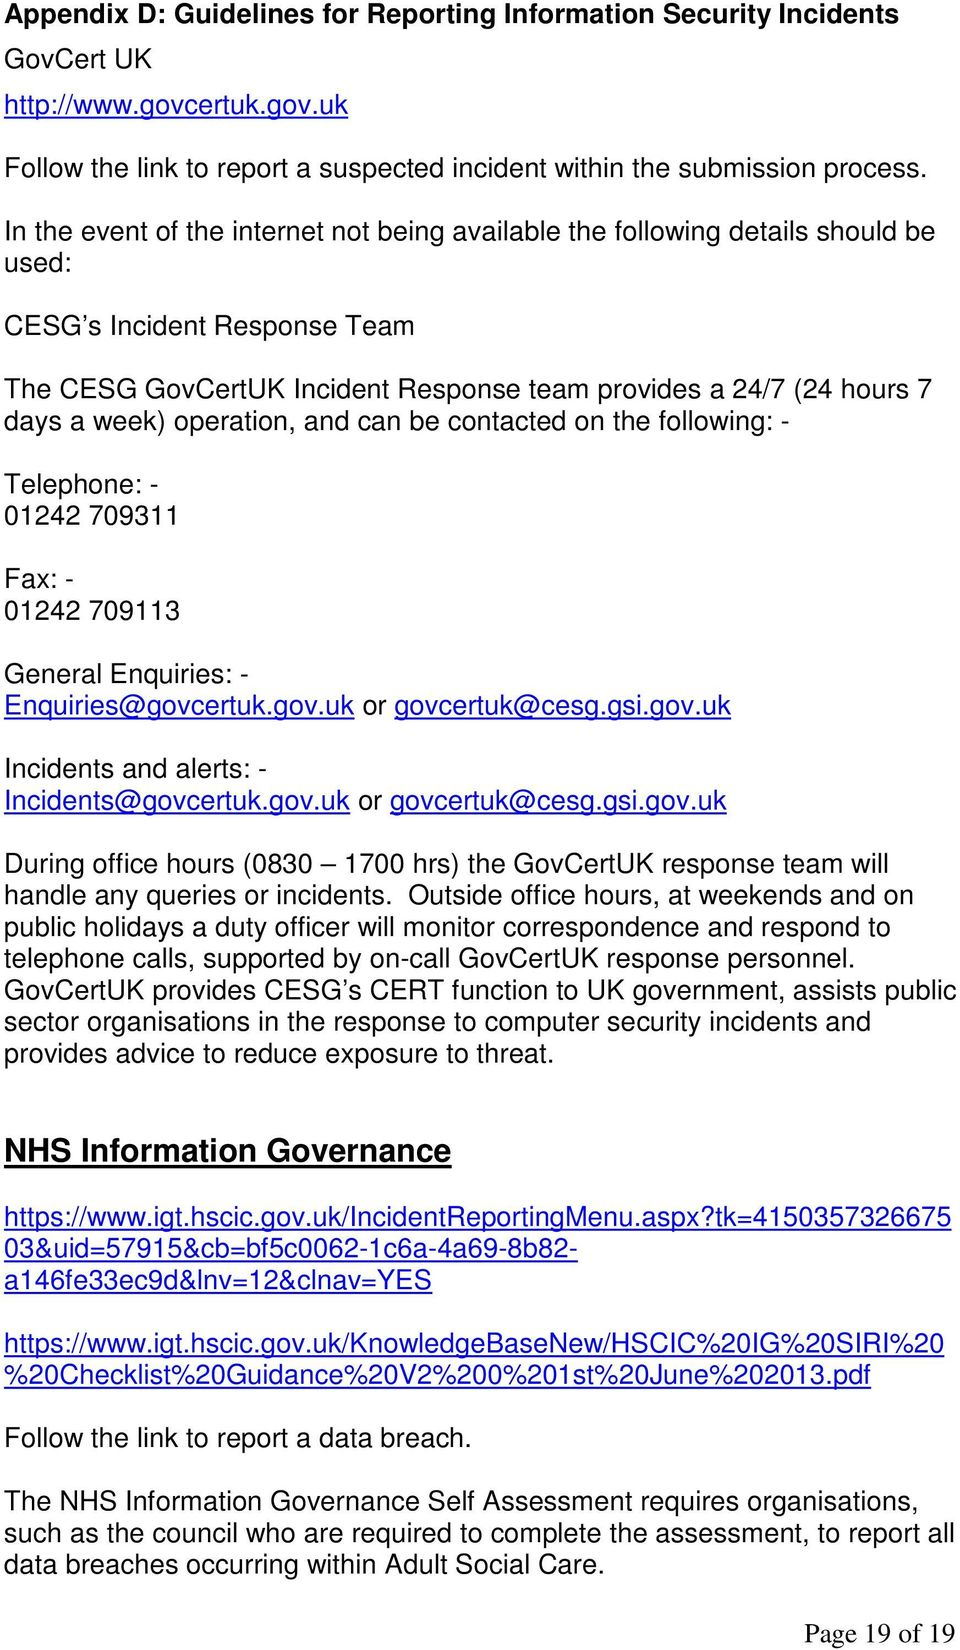 operation, and can be contacted on the following: - Telephone: - 01242 709311 Fax: - 01242 709113 General Enquiries: - Enquiries@govcertuk.gov.uk or govcertuk@cesg.gsi.gov.uk Incidents and alerts: - Incidents@govcertuk.